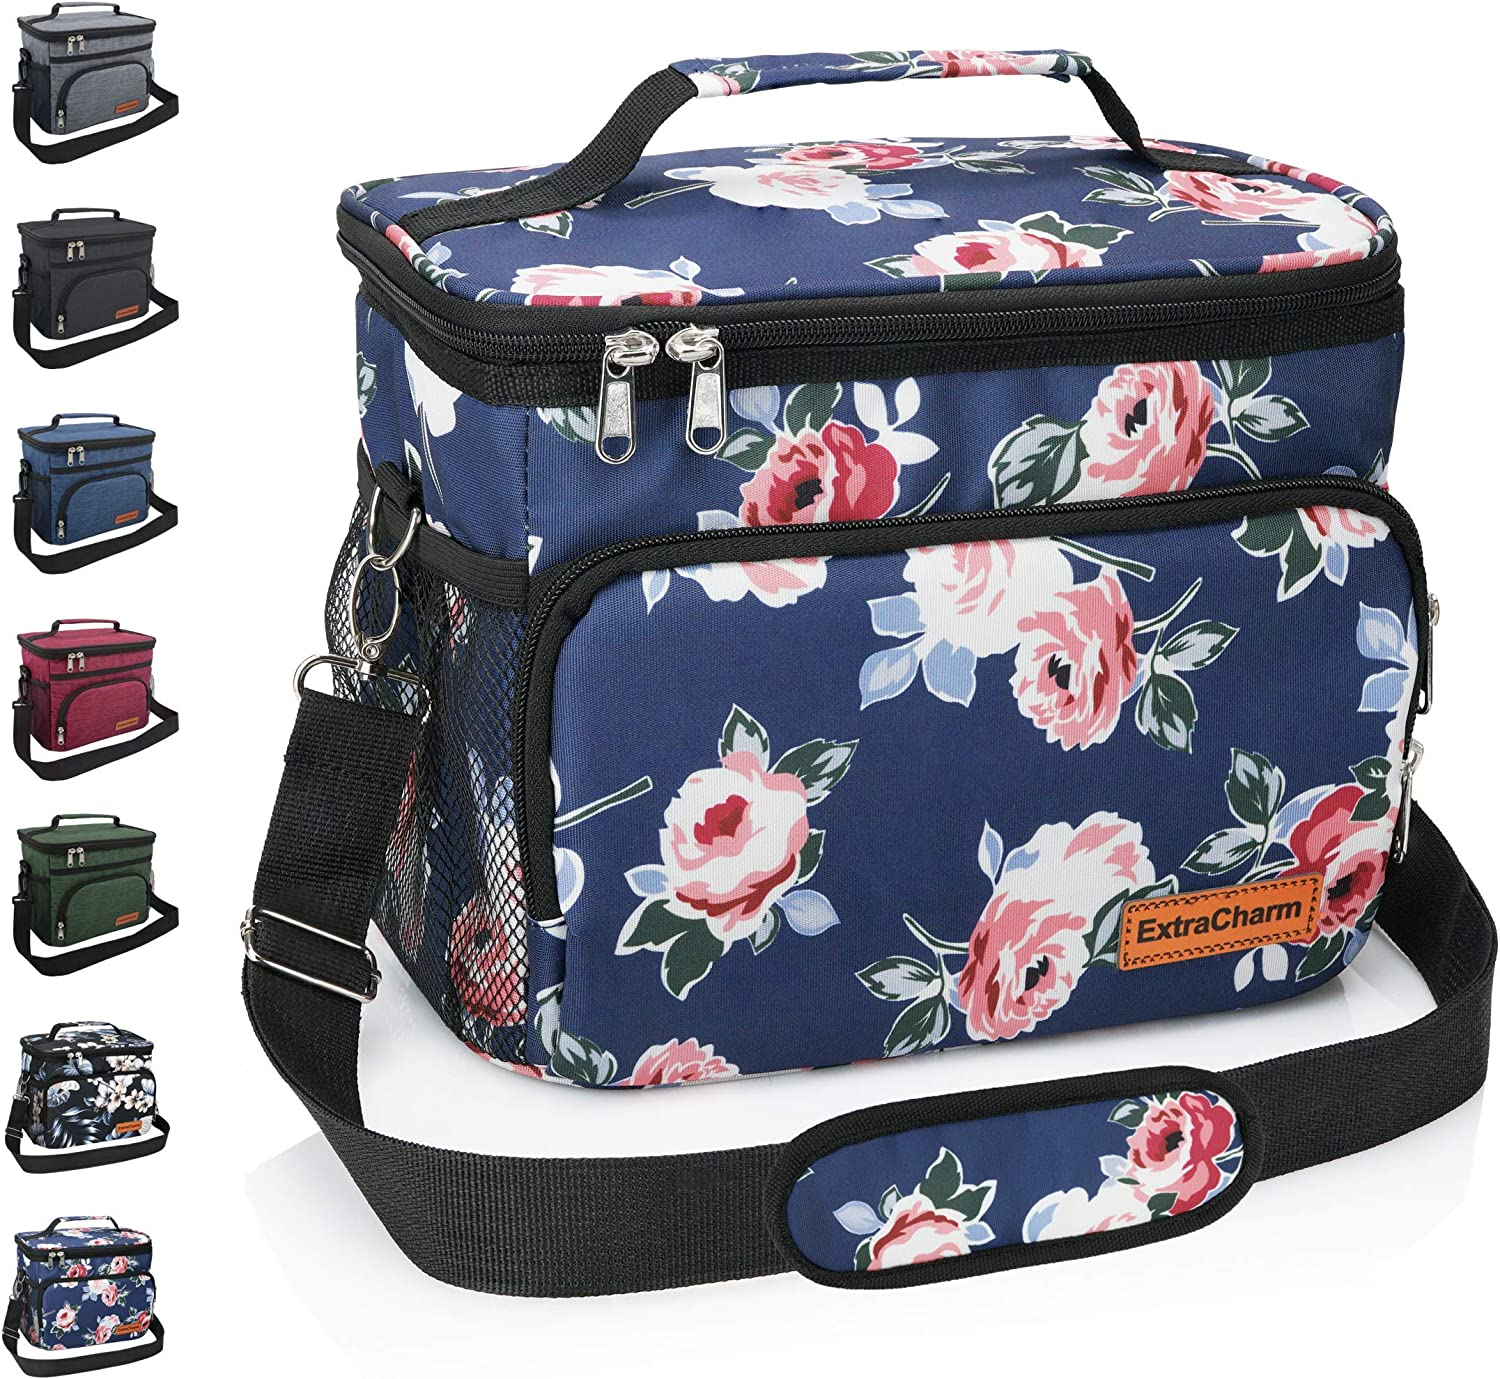 Insulated Lunch Bag for Women/Men - Reusable Lunch Box for School Office Picnic Hiking - Leakproof 12-Can Coke Cooler Tote Bag Organizer with Adjustable Shoulder Strap for Kids/Adults - Romantic Rose